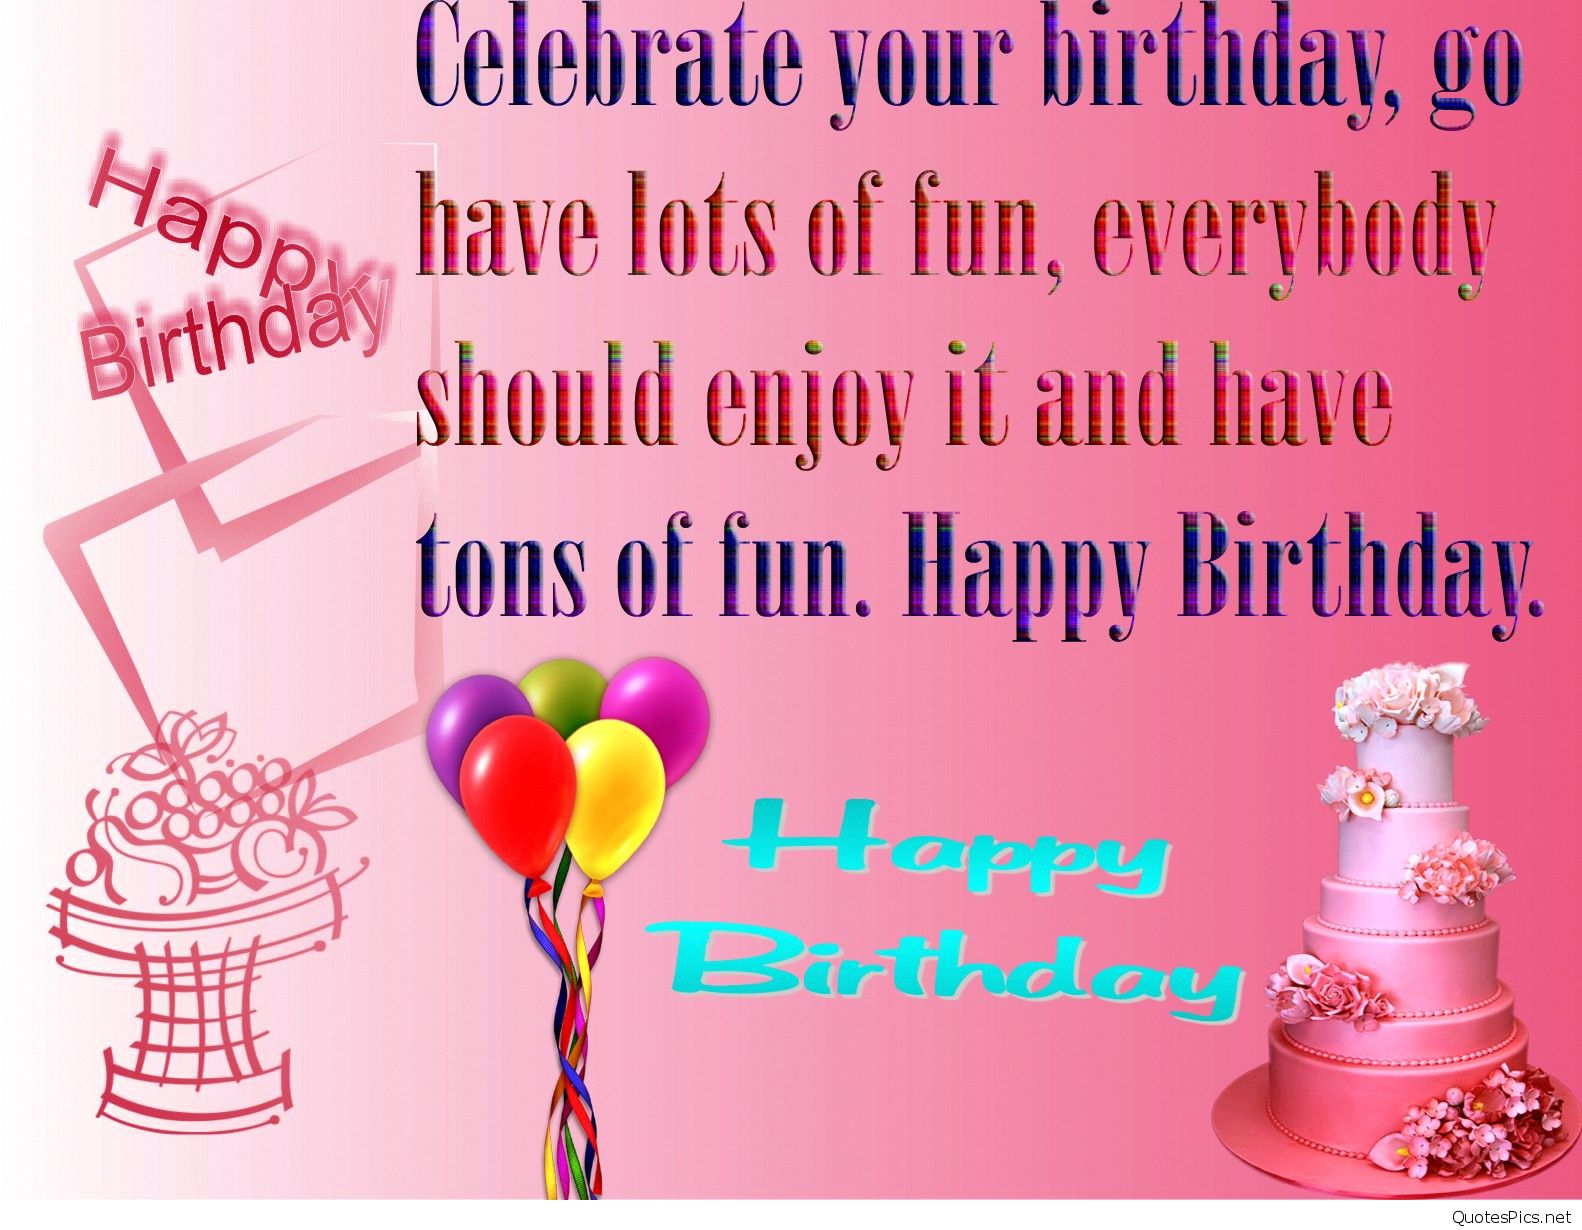 happy birthday wallpaper with wishes ; happy-birthday-wishes-hd-wallpaper